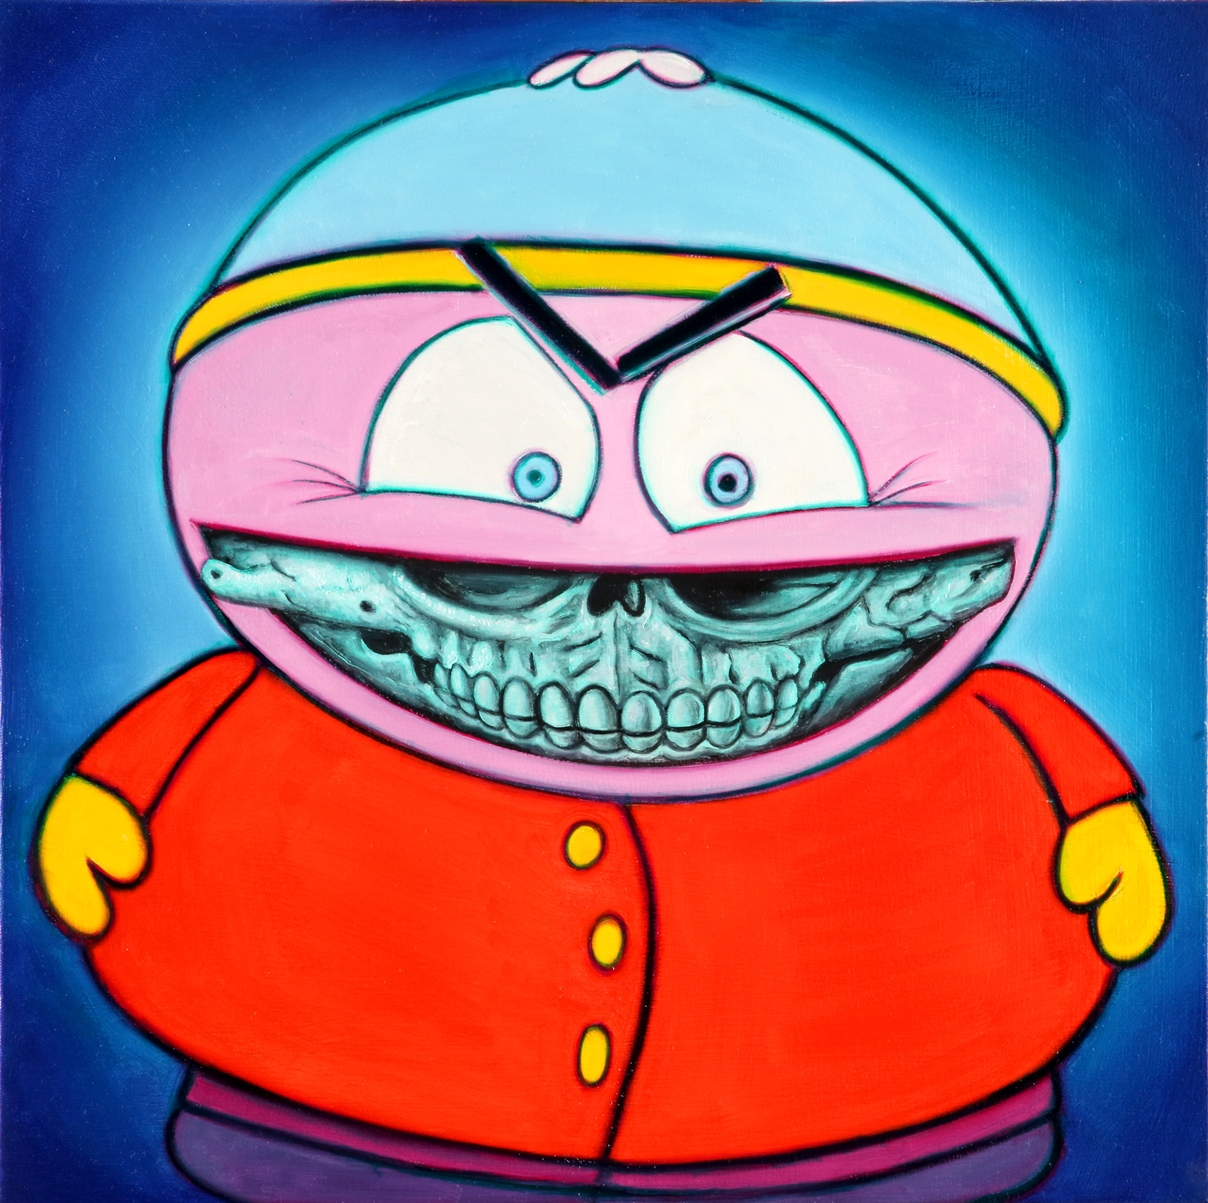 RON ENGLISH  Cartman Grin , 2016  Oil on canvas. Signed lower right  16 x 16 in.